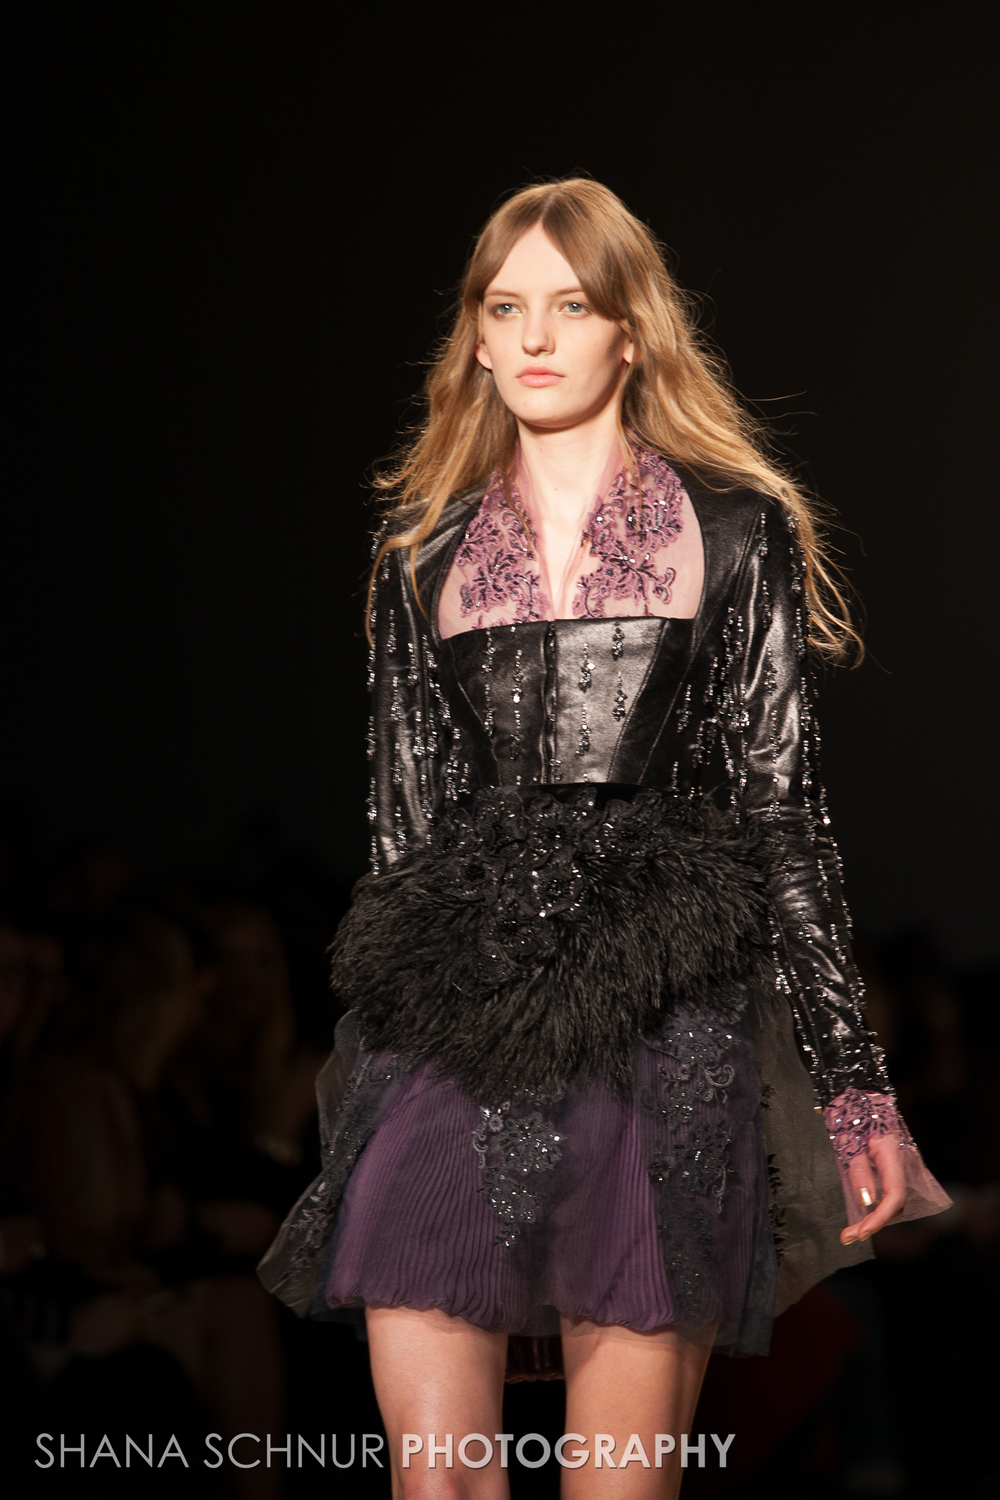 Reem-Acra-New-York-Fashion-Week-Fall-Winter-2015-Shana-Schnur-Photography-IMG_9682-044.jpg